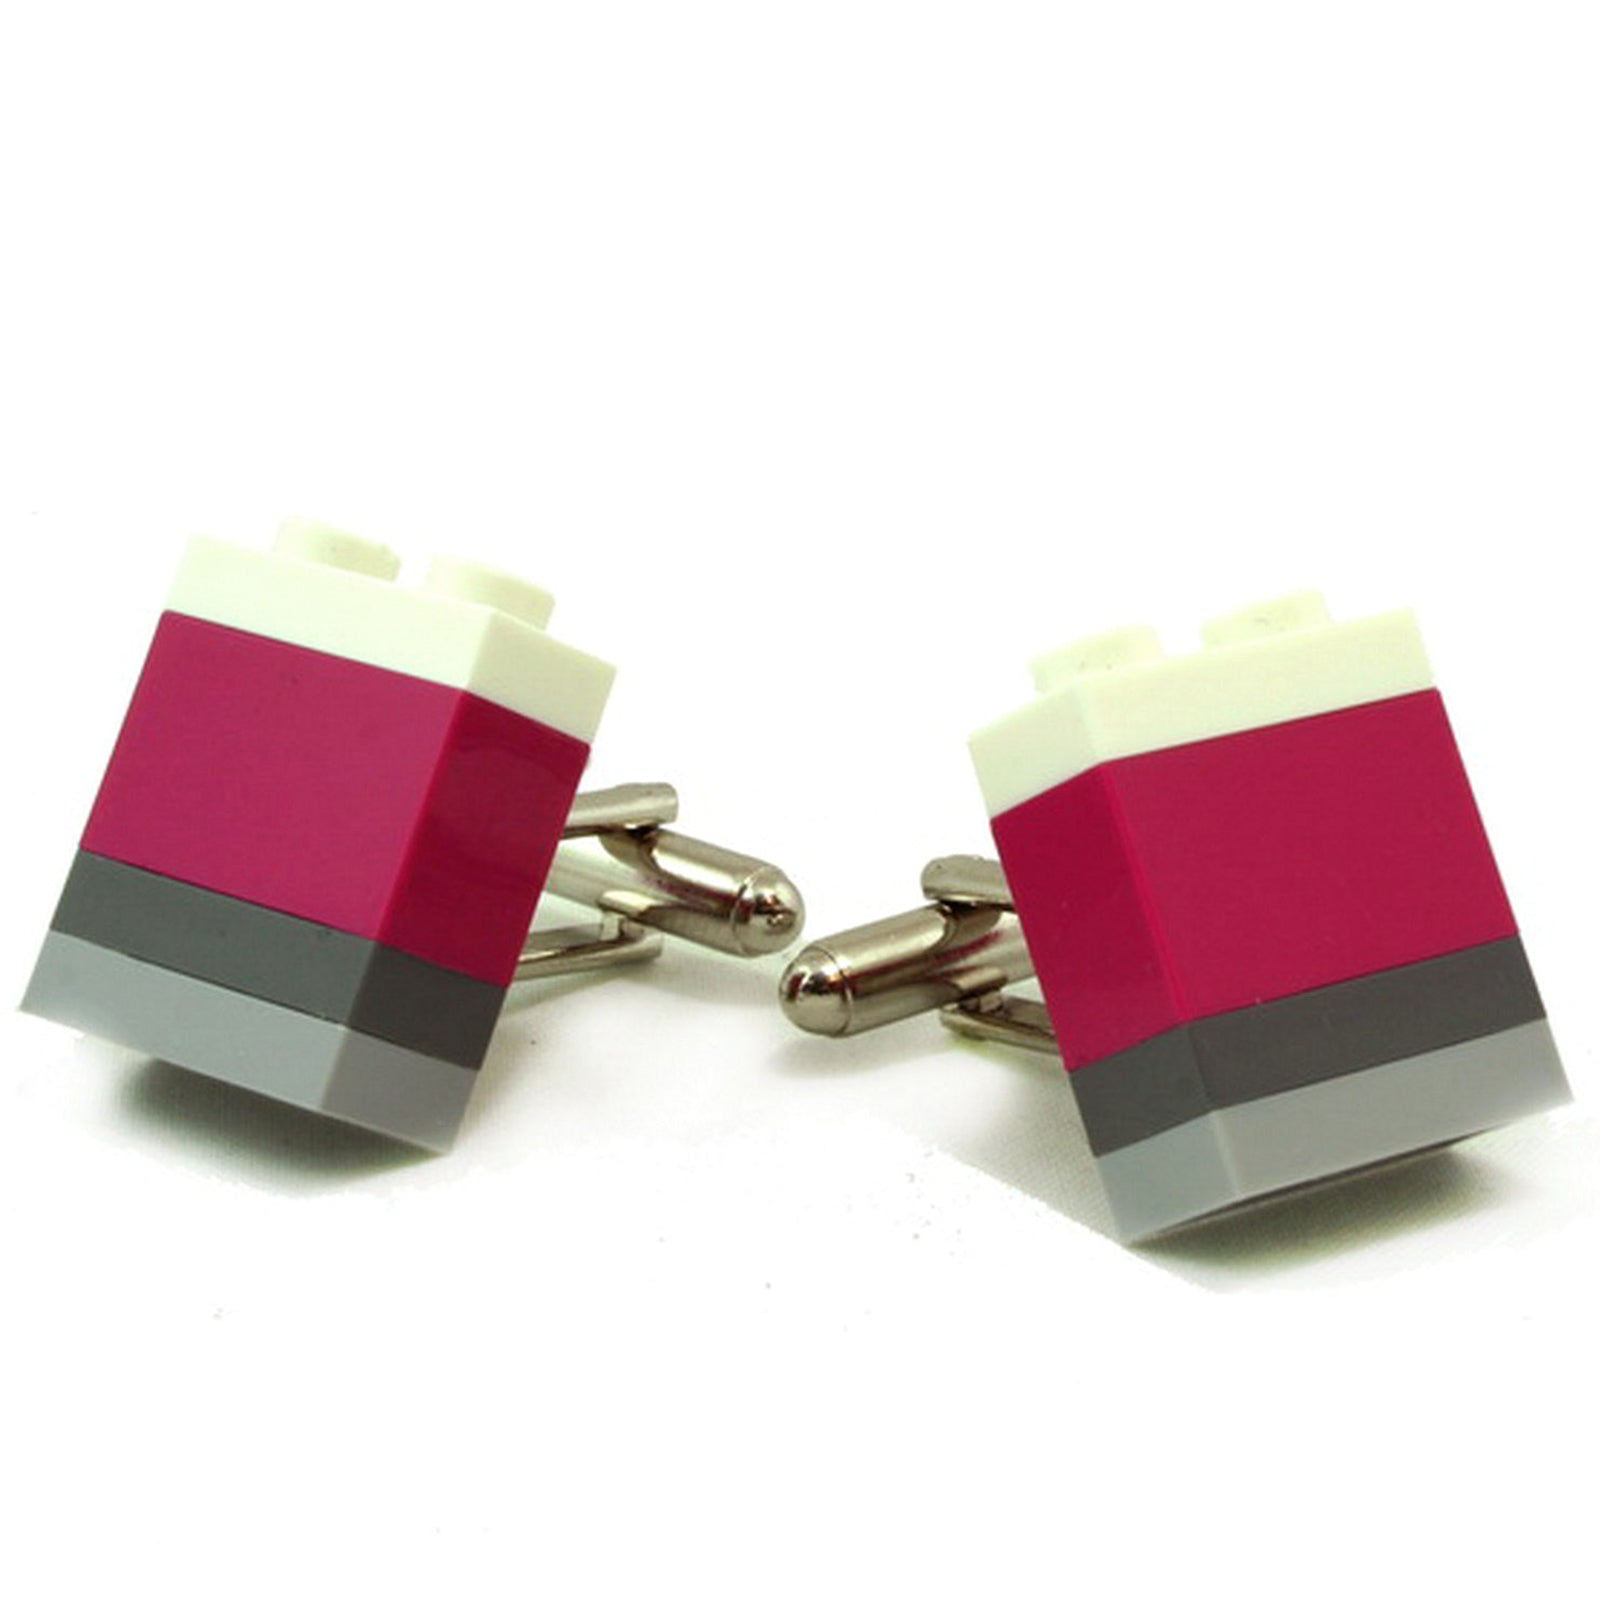 KYOTO striped cufflinks